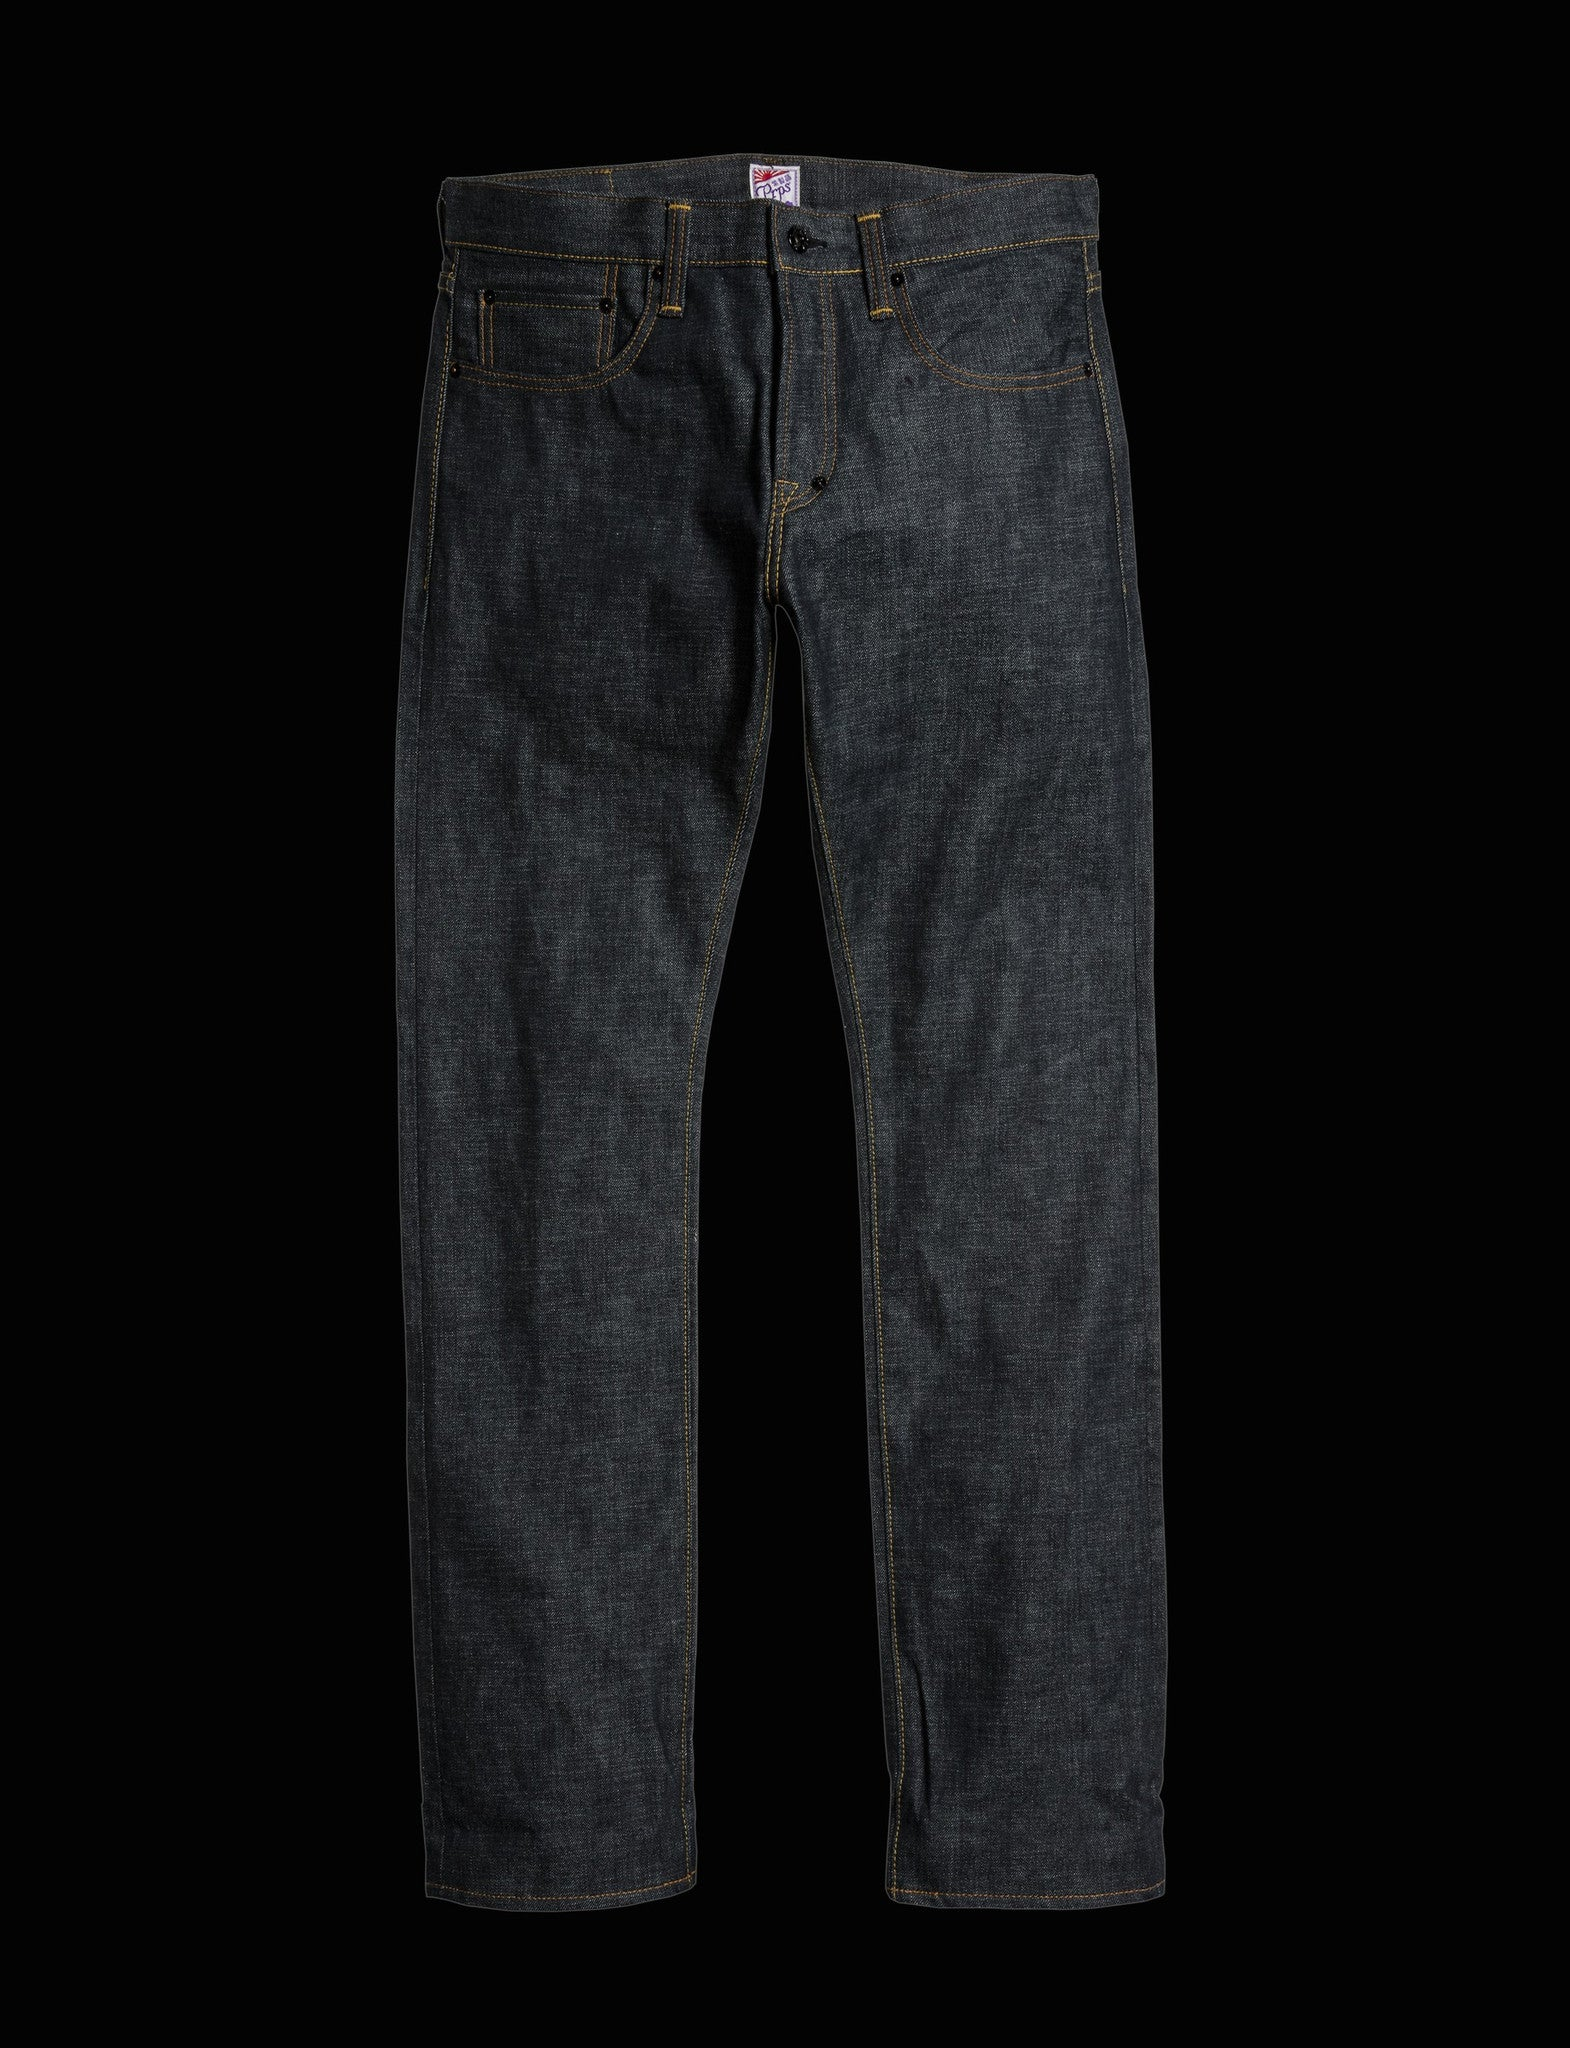 d83c3dc9b97 Tato Jeans Raw Selvedge Agreste Clothing Mens Denim Rugged Garments  Passionately Made In Valencia. Prps - Demon - Selvedge Raw - Jeans - Prps